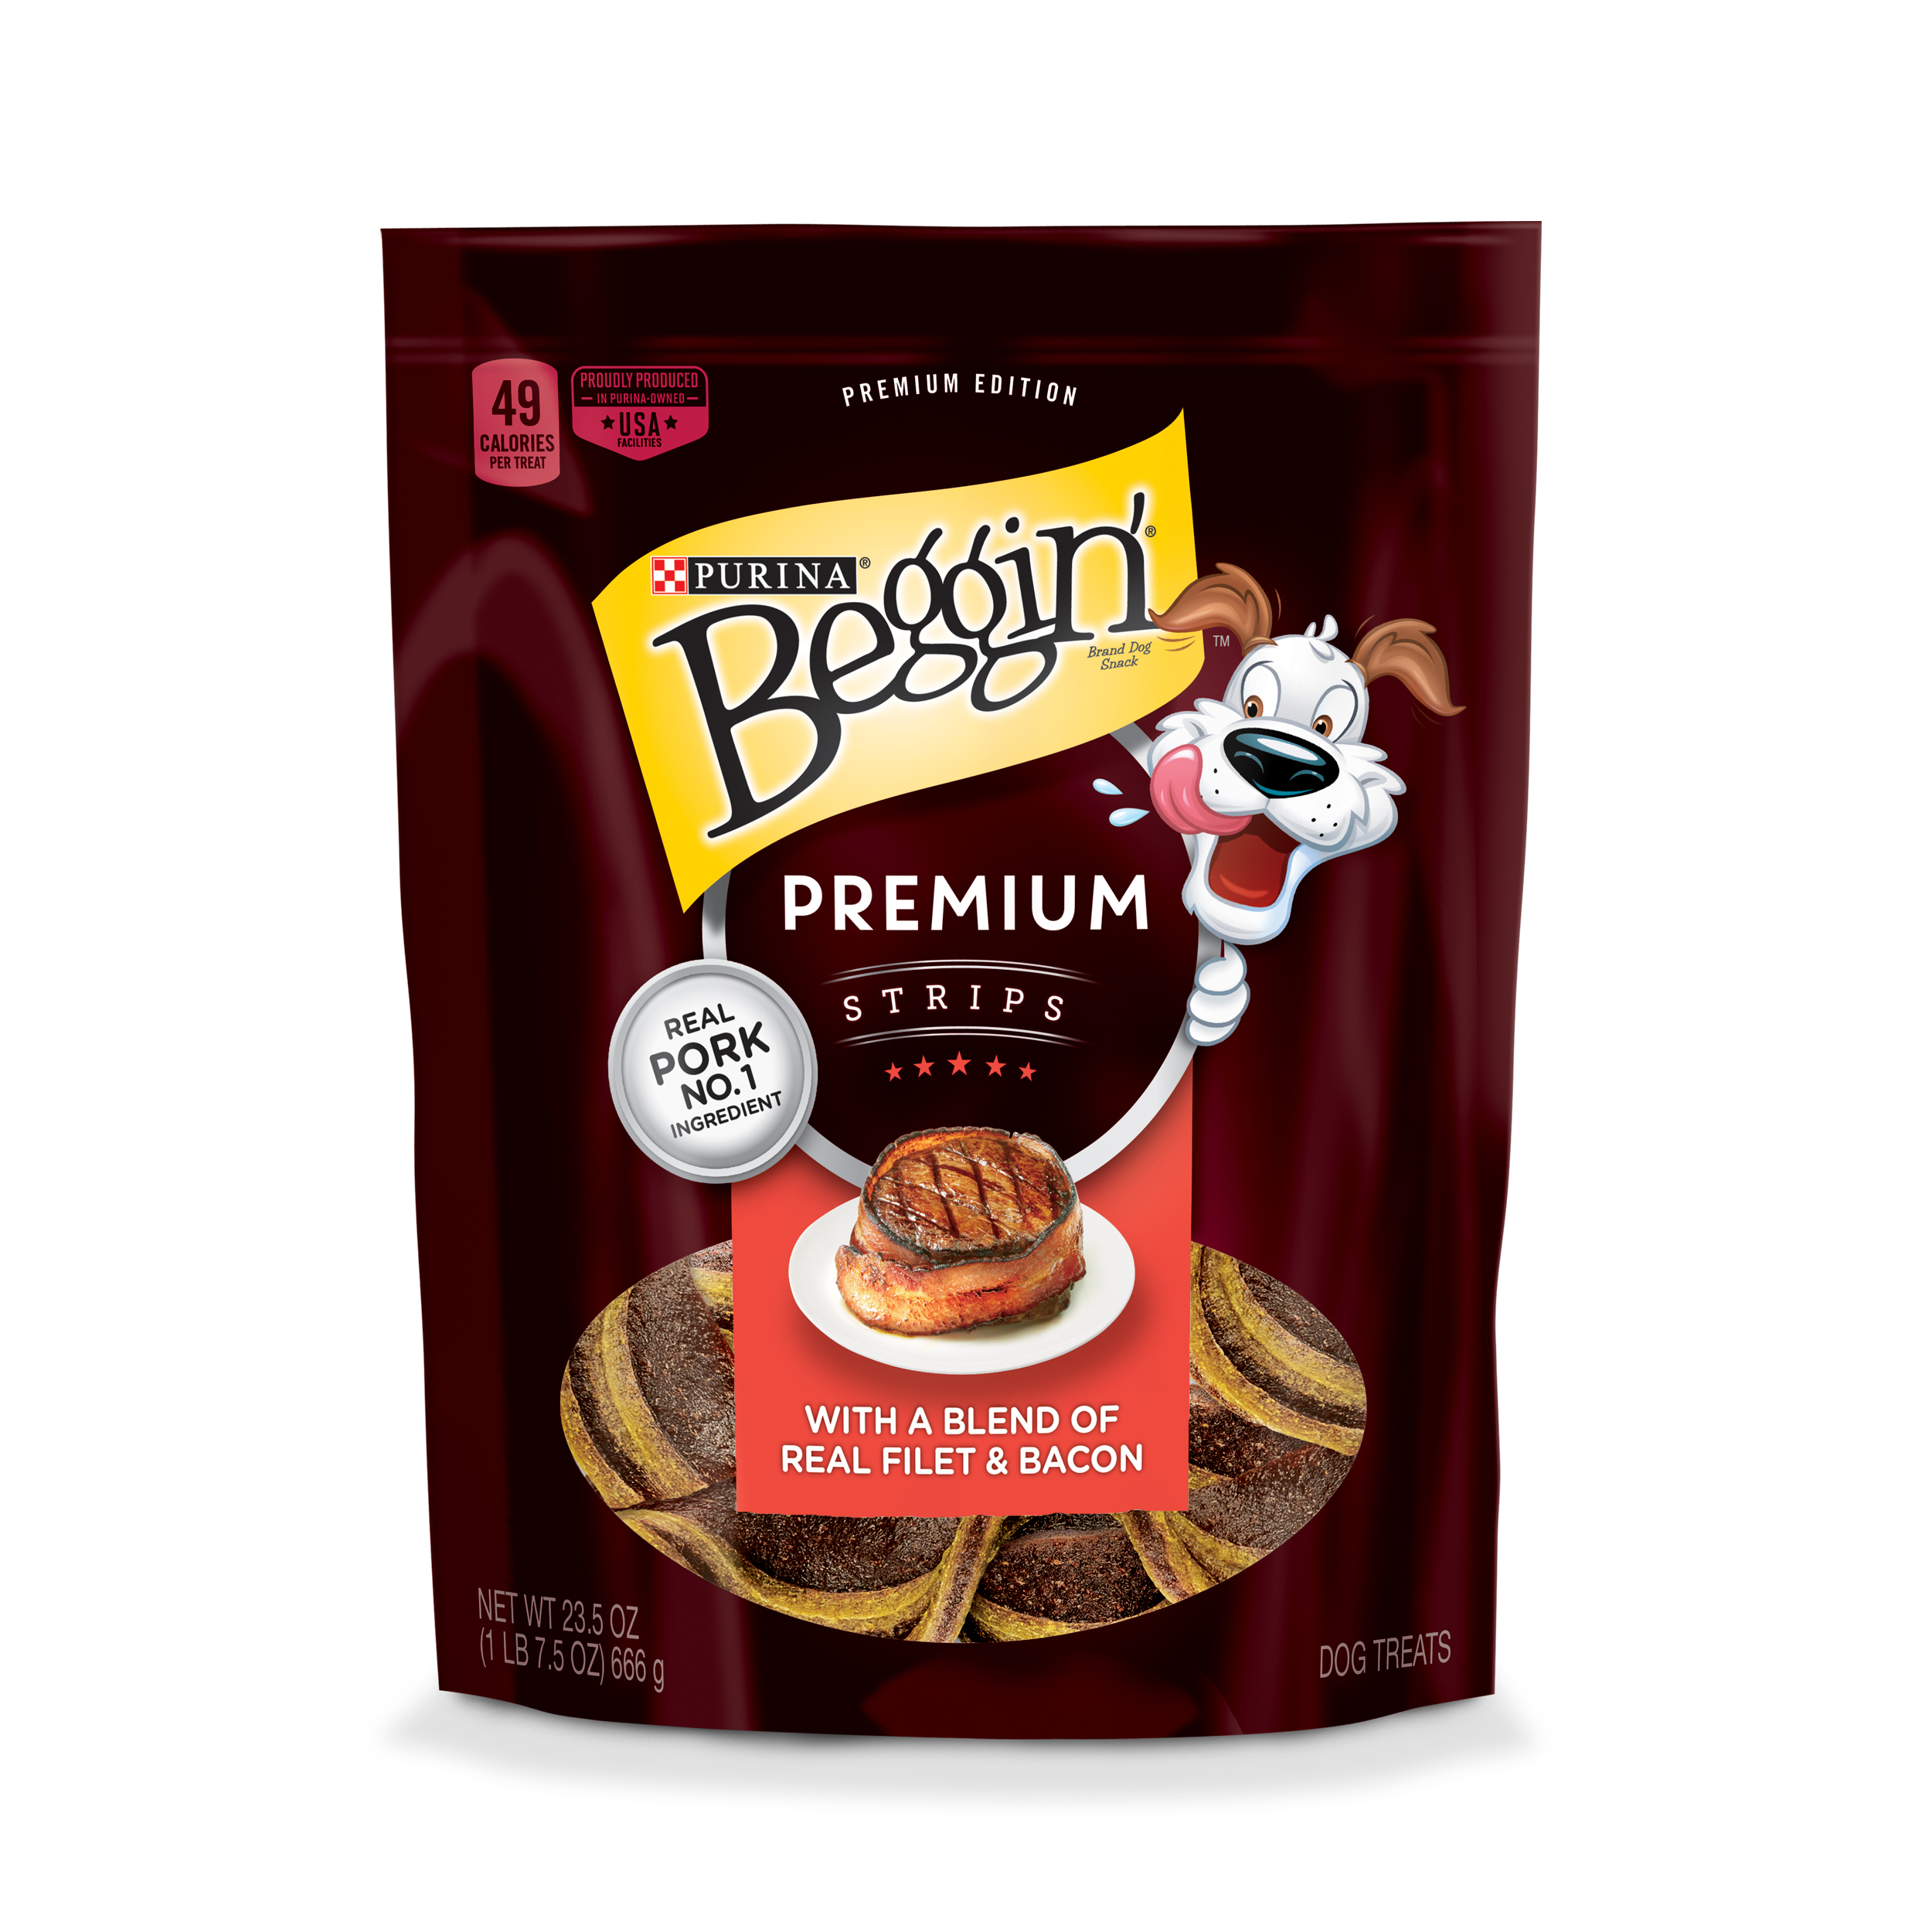 Purina Beggin' Premium Strips Real Pork Dog Treats - 23.5 oz. Pouch